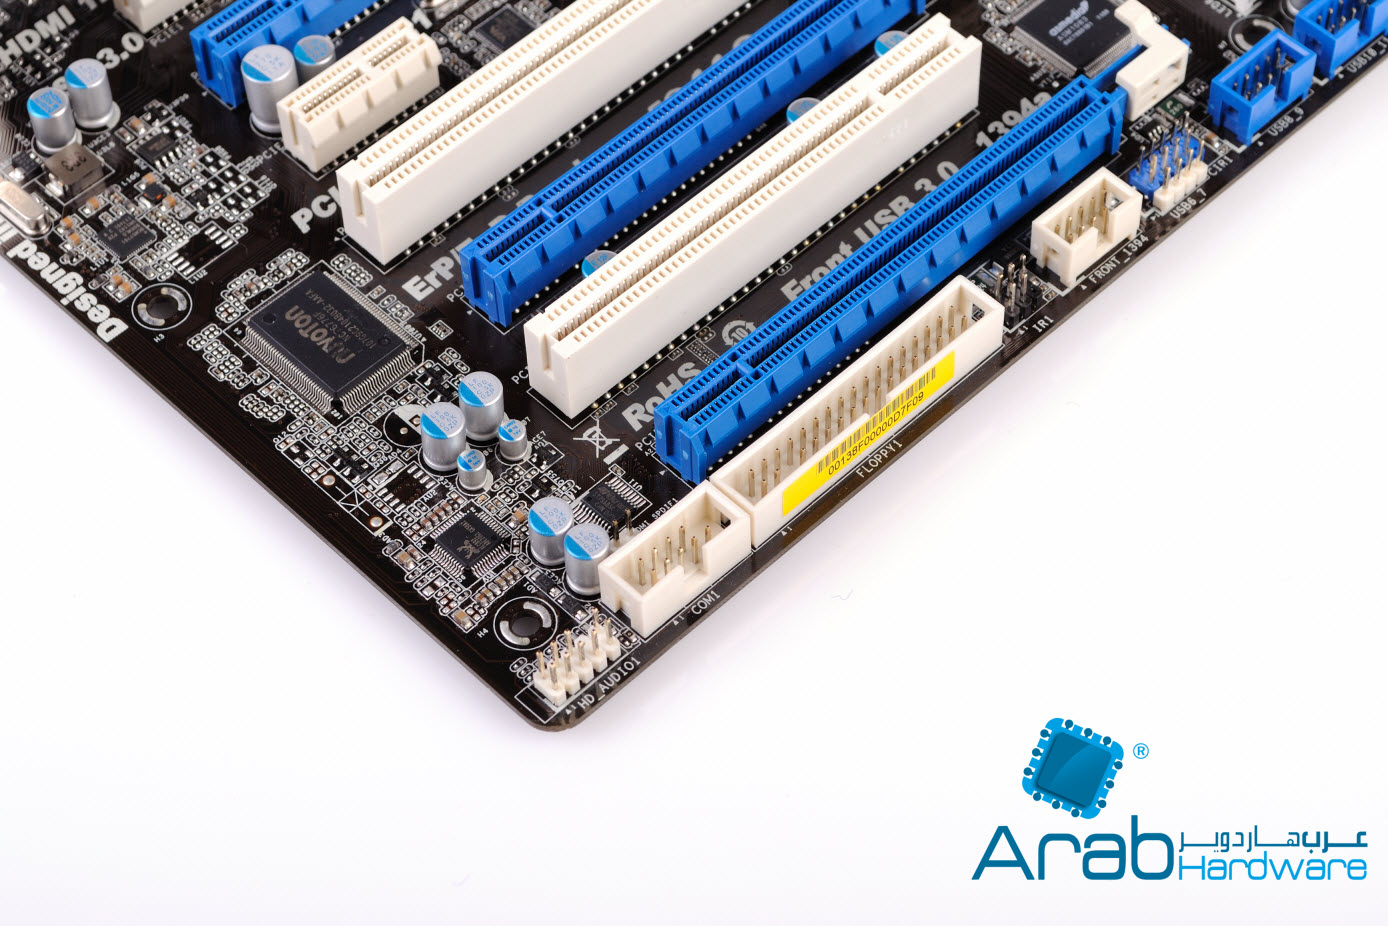 ASRock Z68 Extreme4 First Look - Arabhardware